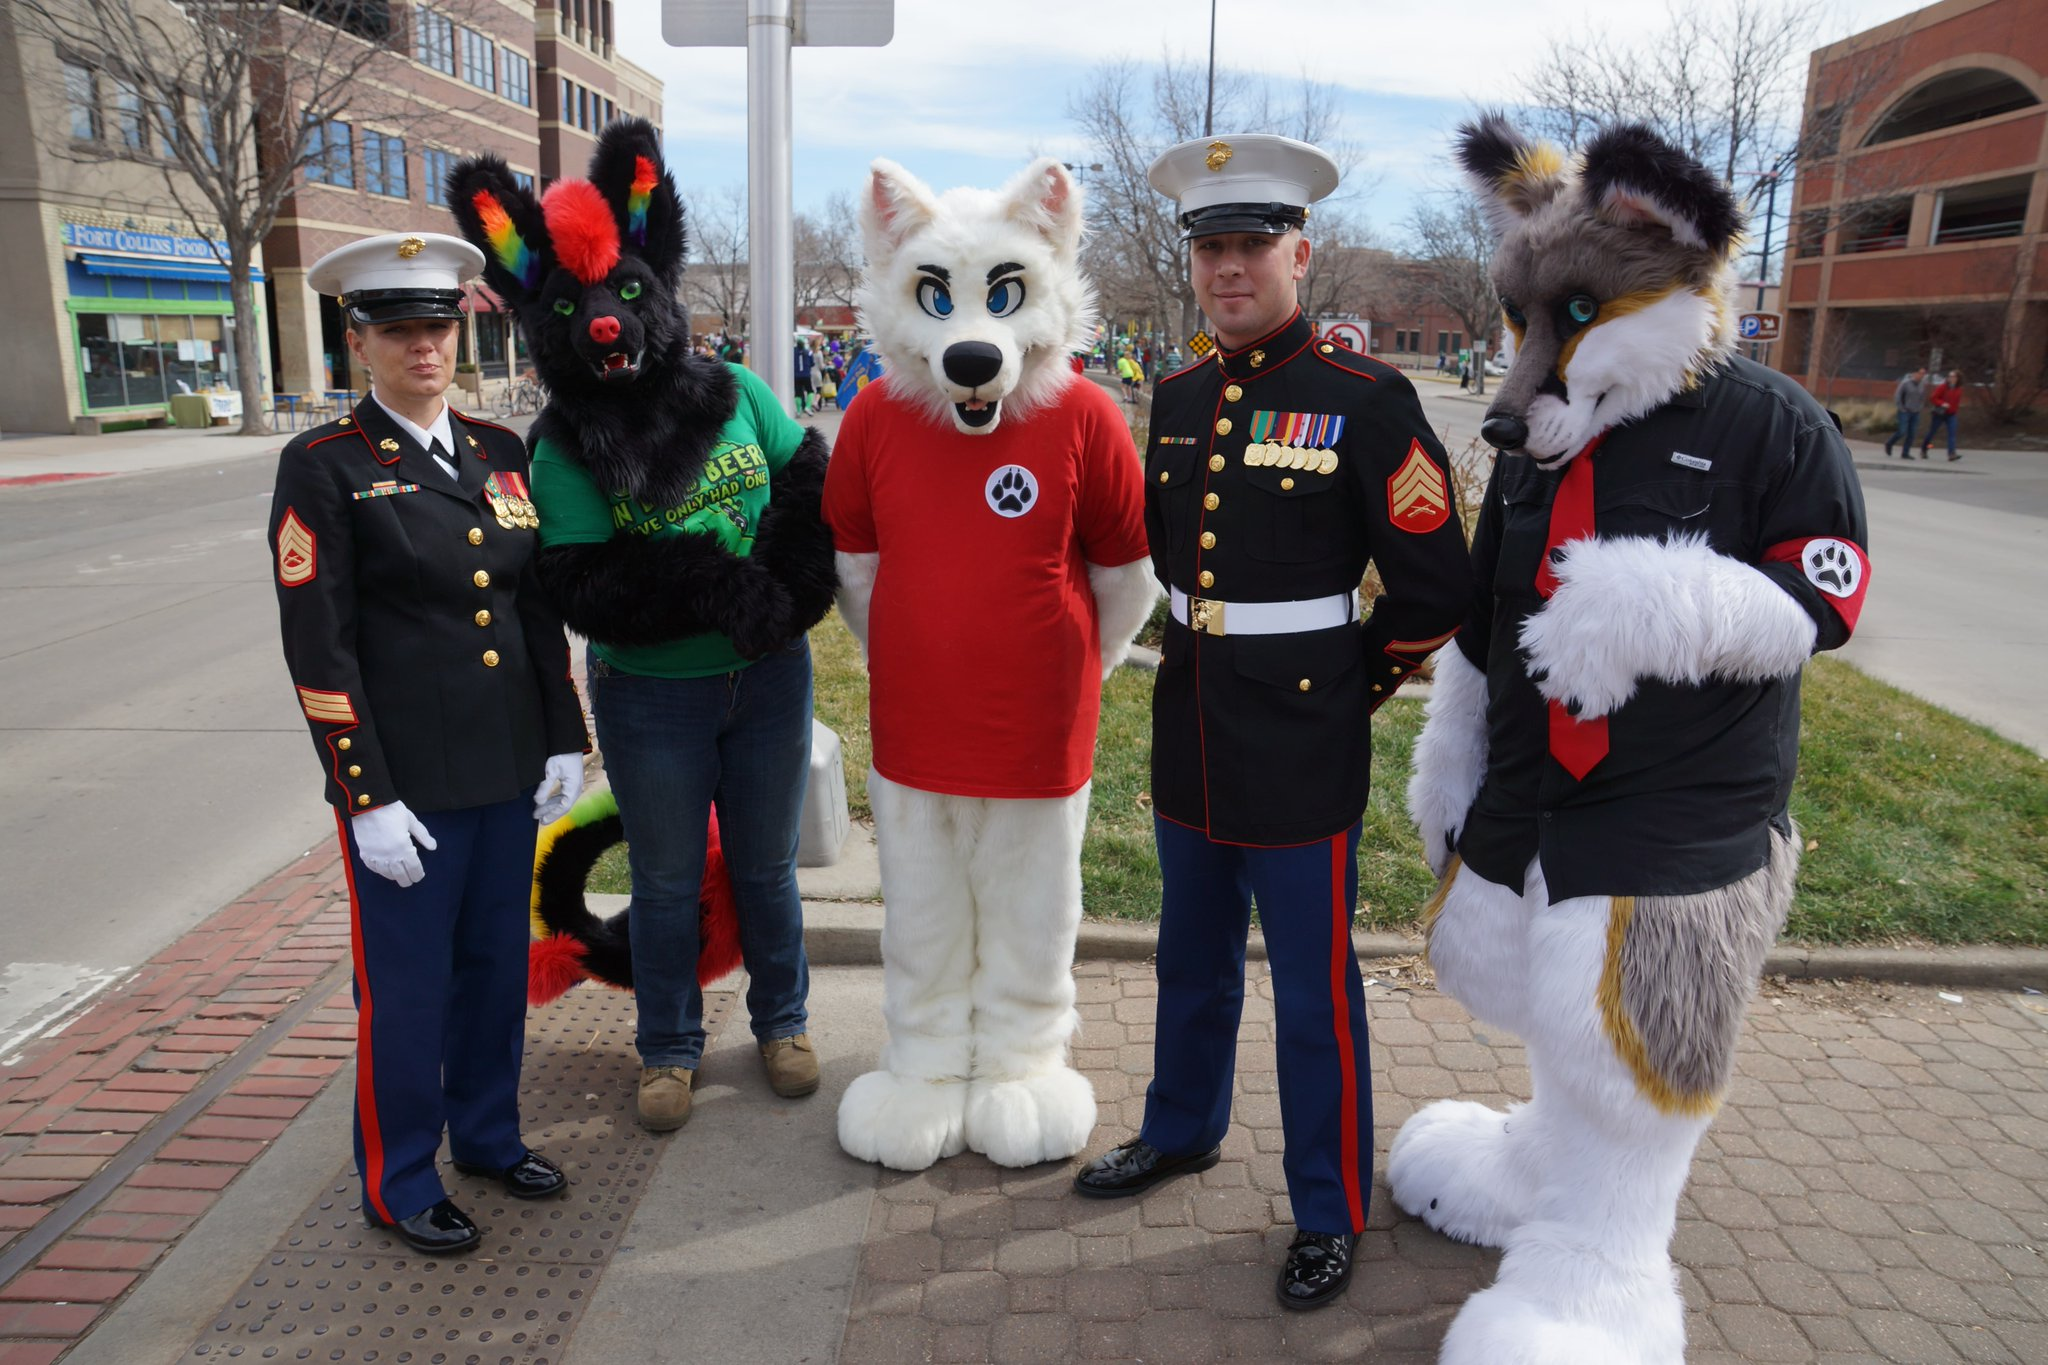 Furry Raiders On Twitter Quot Dancing With The Leprechauns At Fort Collins St Patrick S Day Parade